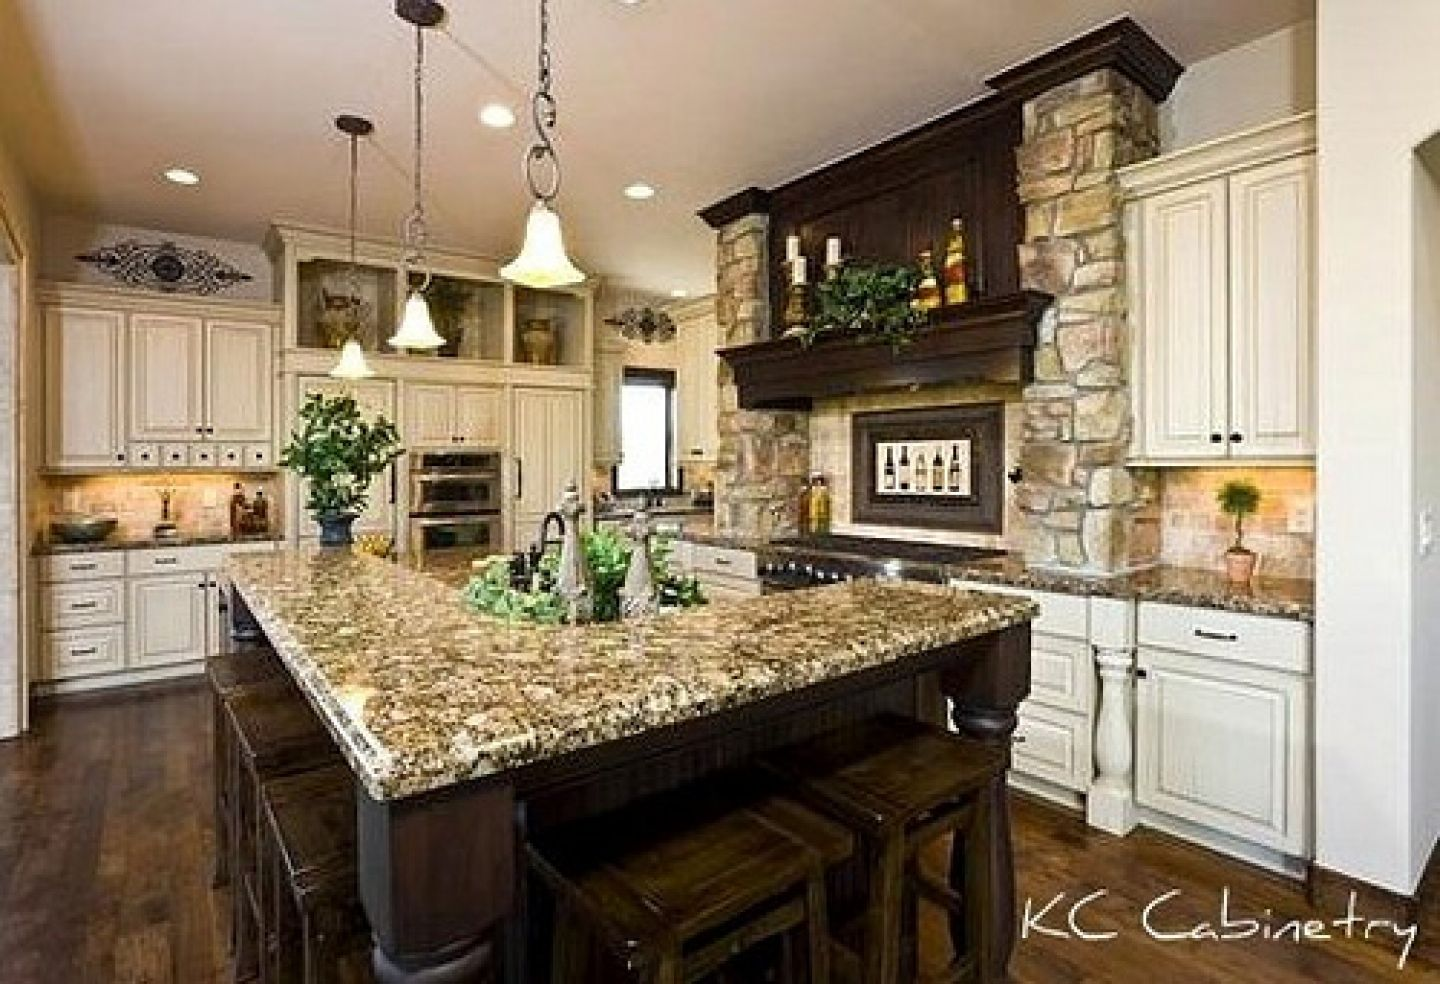 Tuscan Kitchen Island Cut Gloves For Design Light Distressed Cabinets Dark